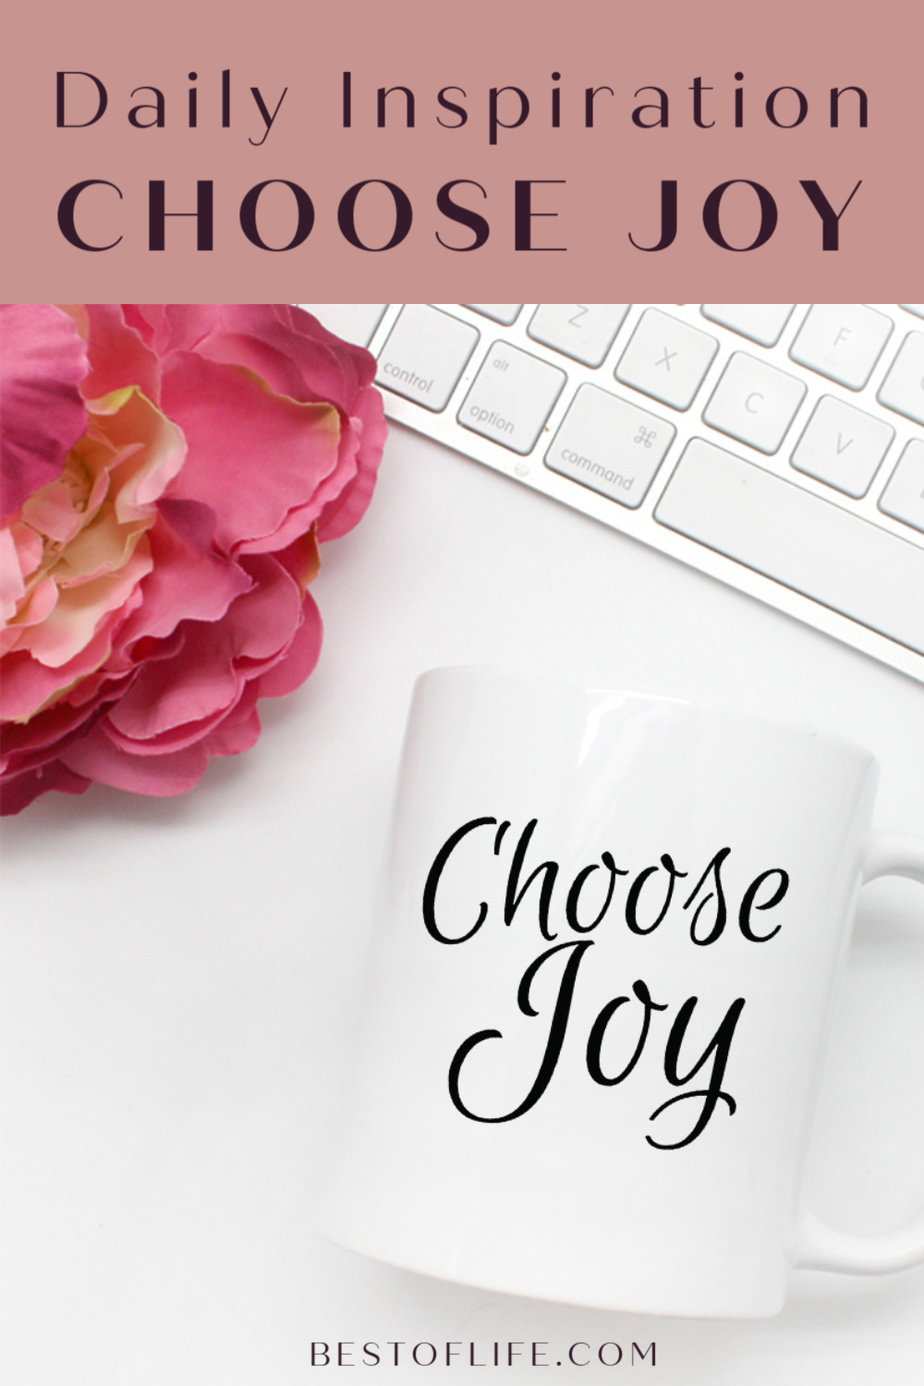 Simple and to the point as all life's lessons should be. Start your day with happiness with this Choose Joy script mug and spread positivity to everyone! Inspirational Quotes | Mugs for Work | Mother's Day Gift Ideas | Happiness Quotes | Gift Ideas for Friends | Quotes and Inspiration via @thebestoflife